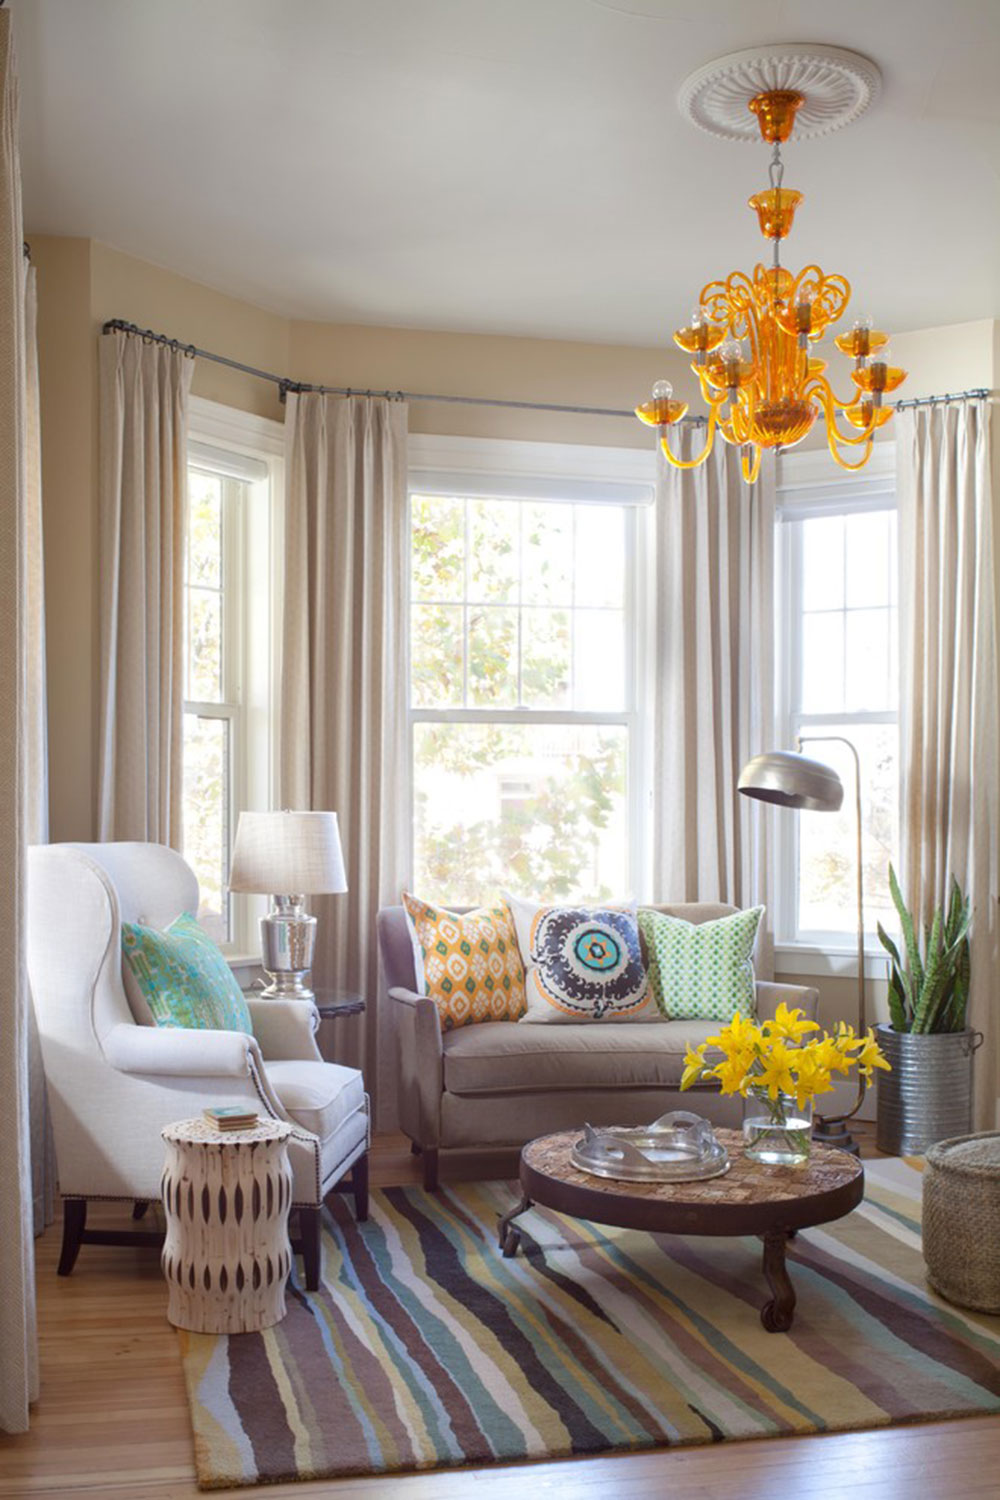 bay window decor to try in your home